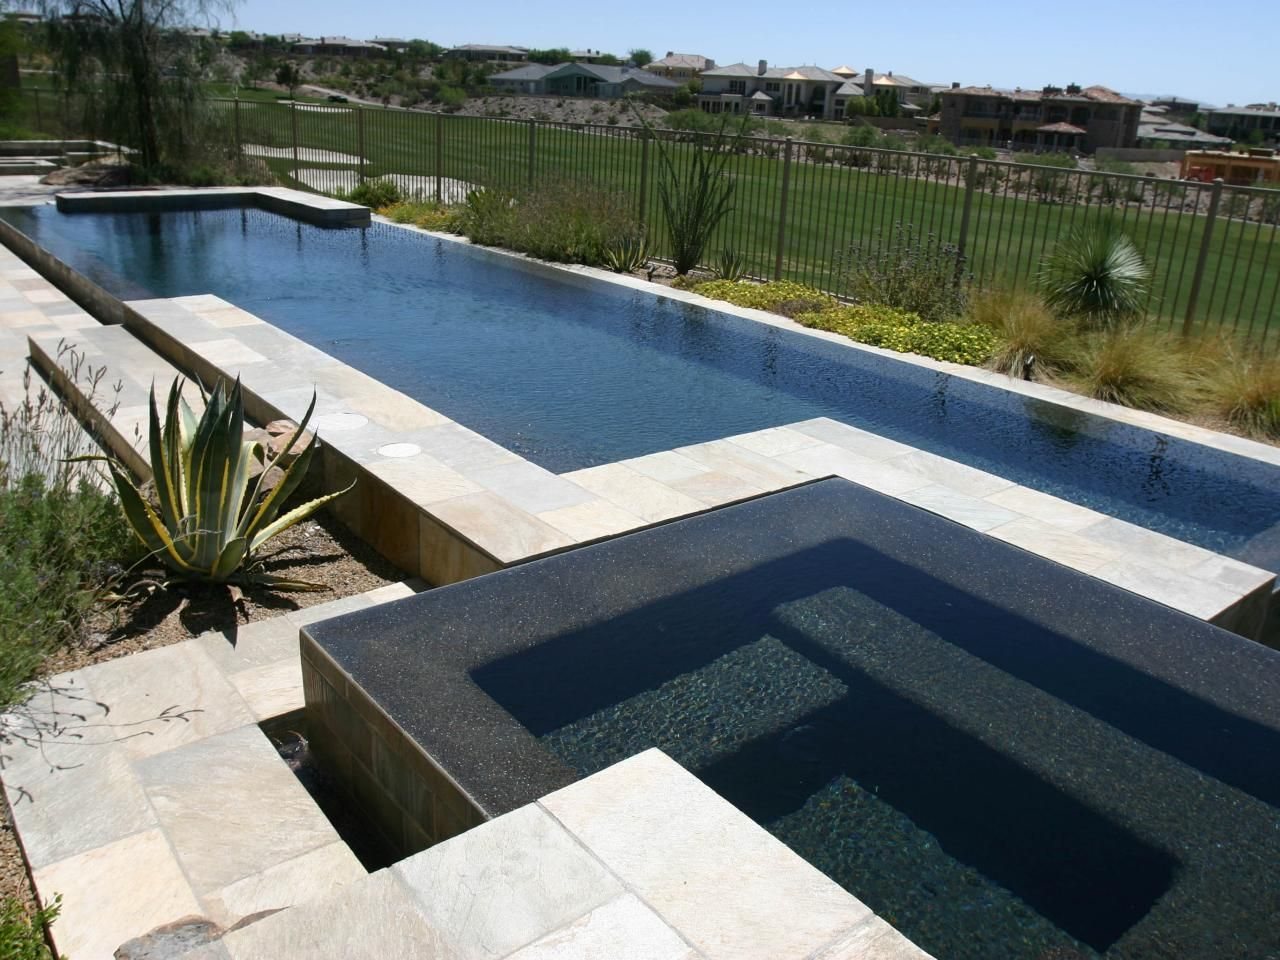 Modern Pools With Black River Rock Border Google Search Pool Pinterest More Rock Border